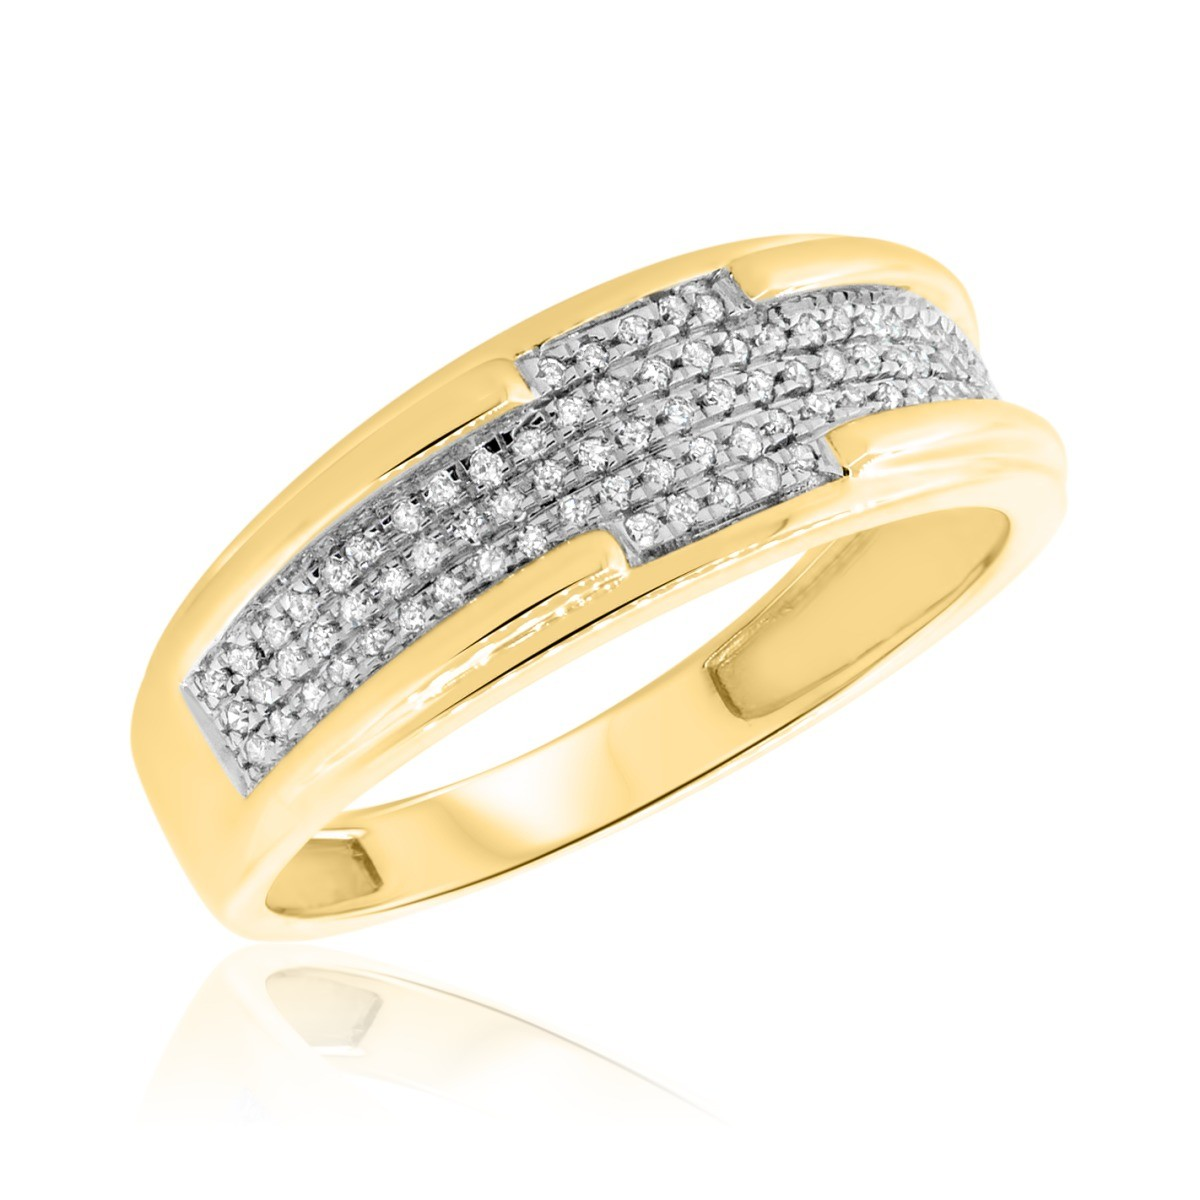 1/5 CT. T.W. Diamond Ladies Wedding Band  14K Yellow Gold